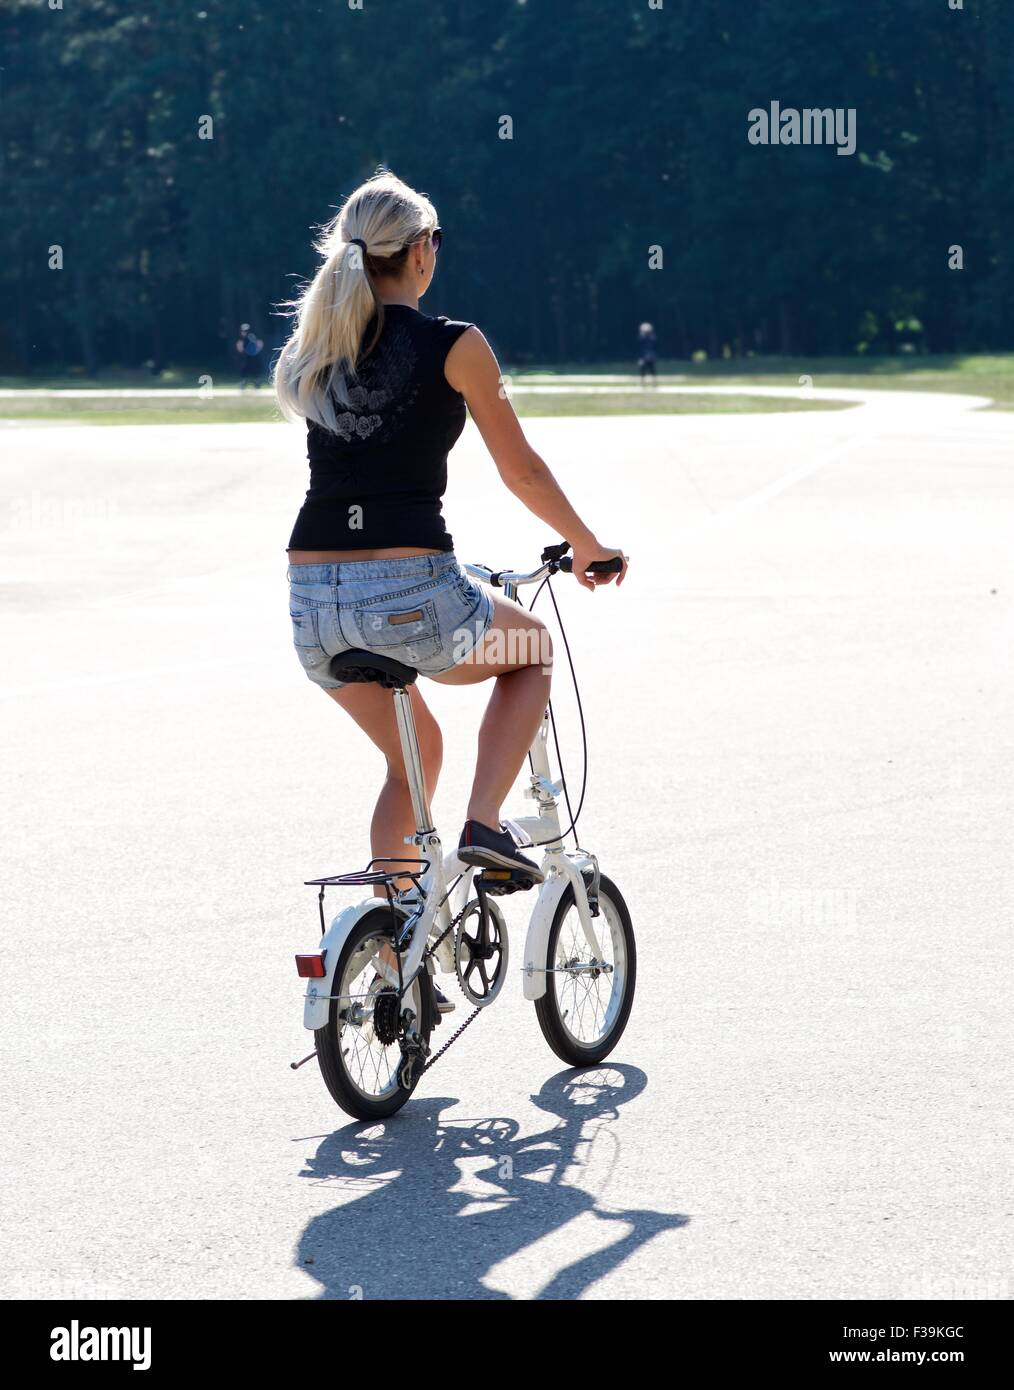 Rear view of a woman riding bicycle in the park, Lithuania - Stock Image